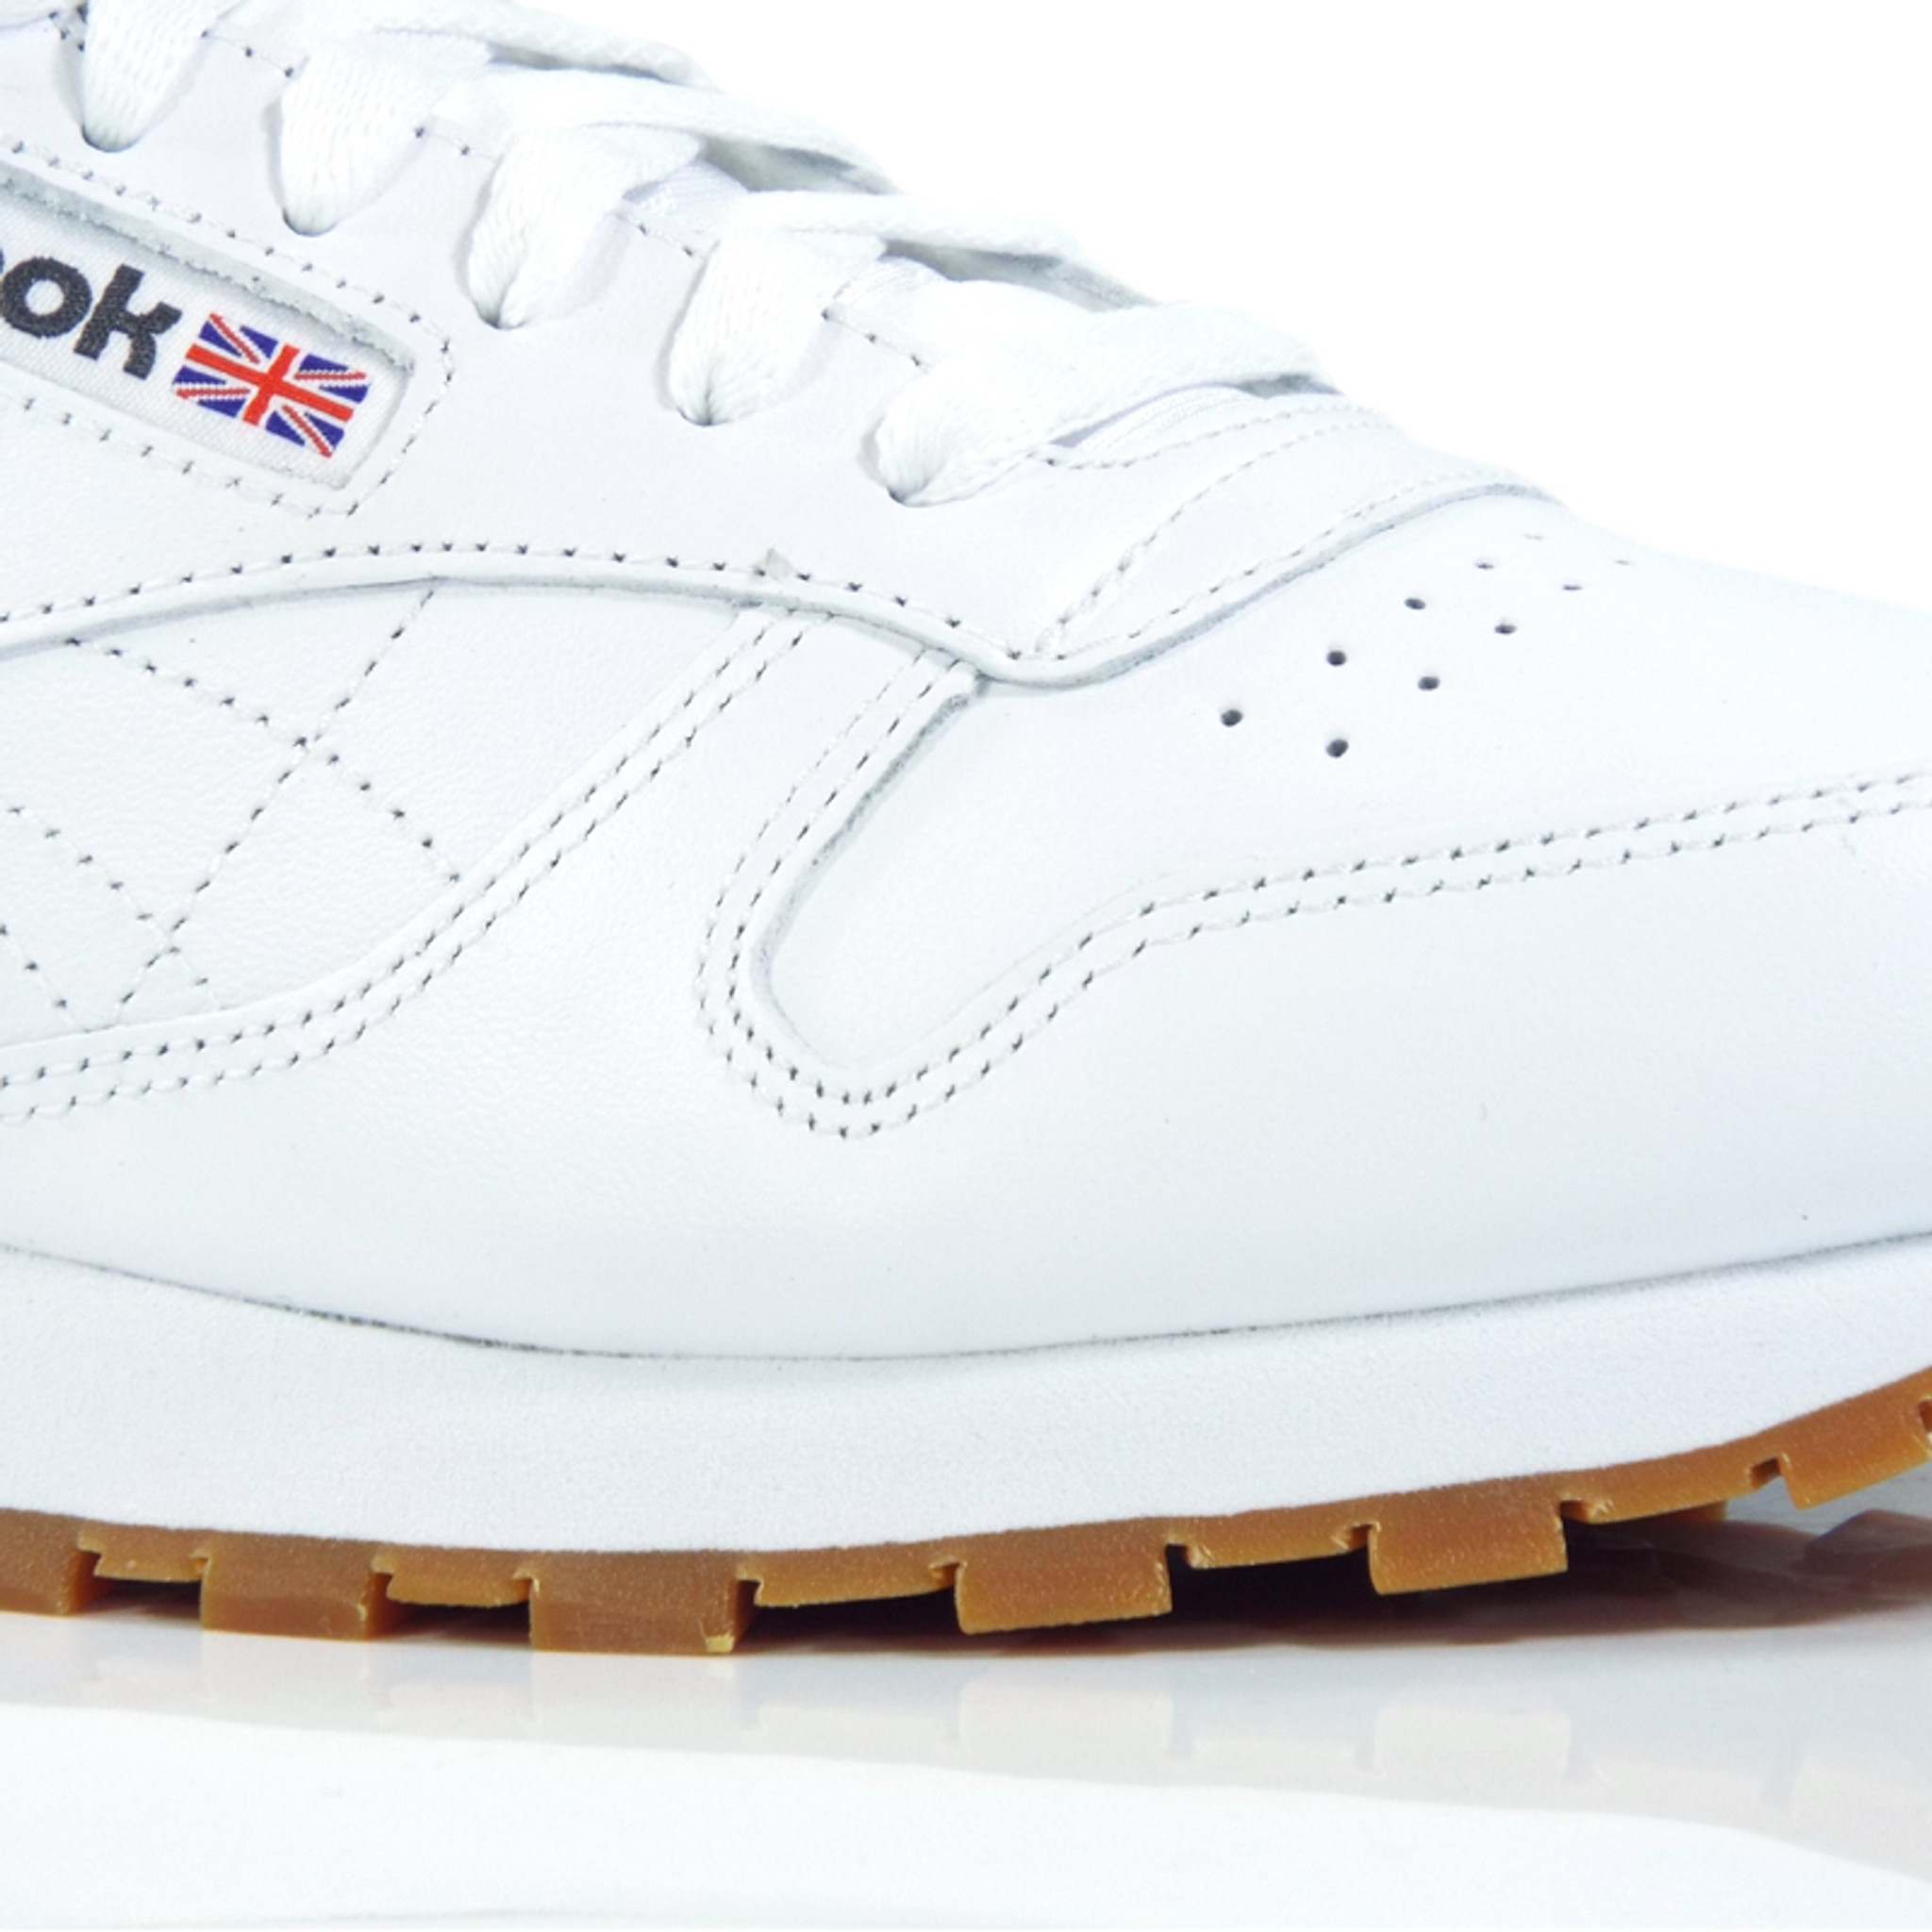 meilleures baskets f8698 6134b Reebok Classic Leather Shoes - White/Gum